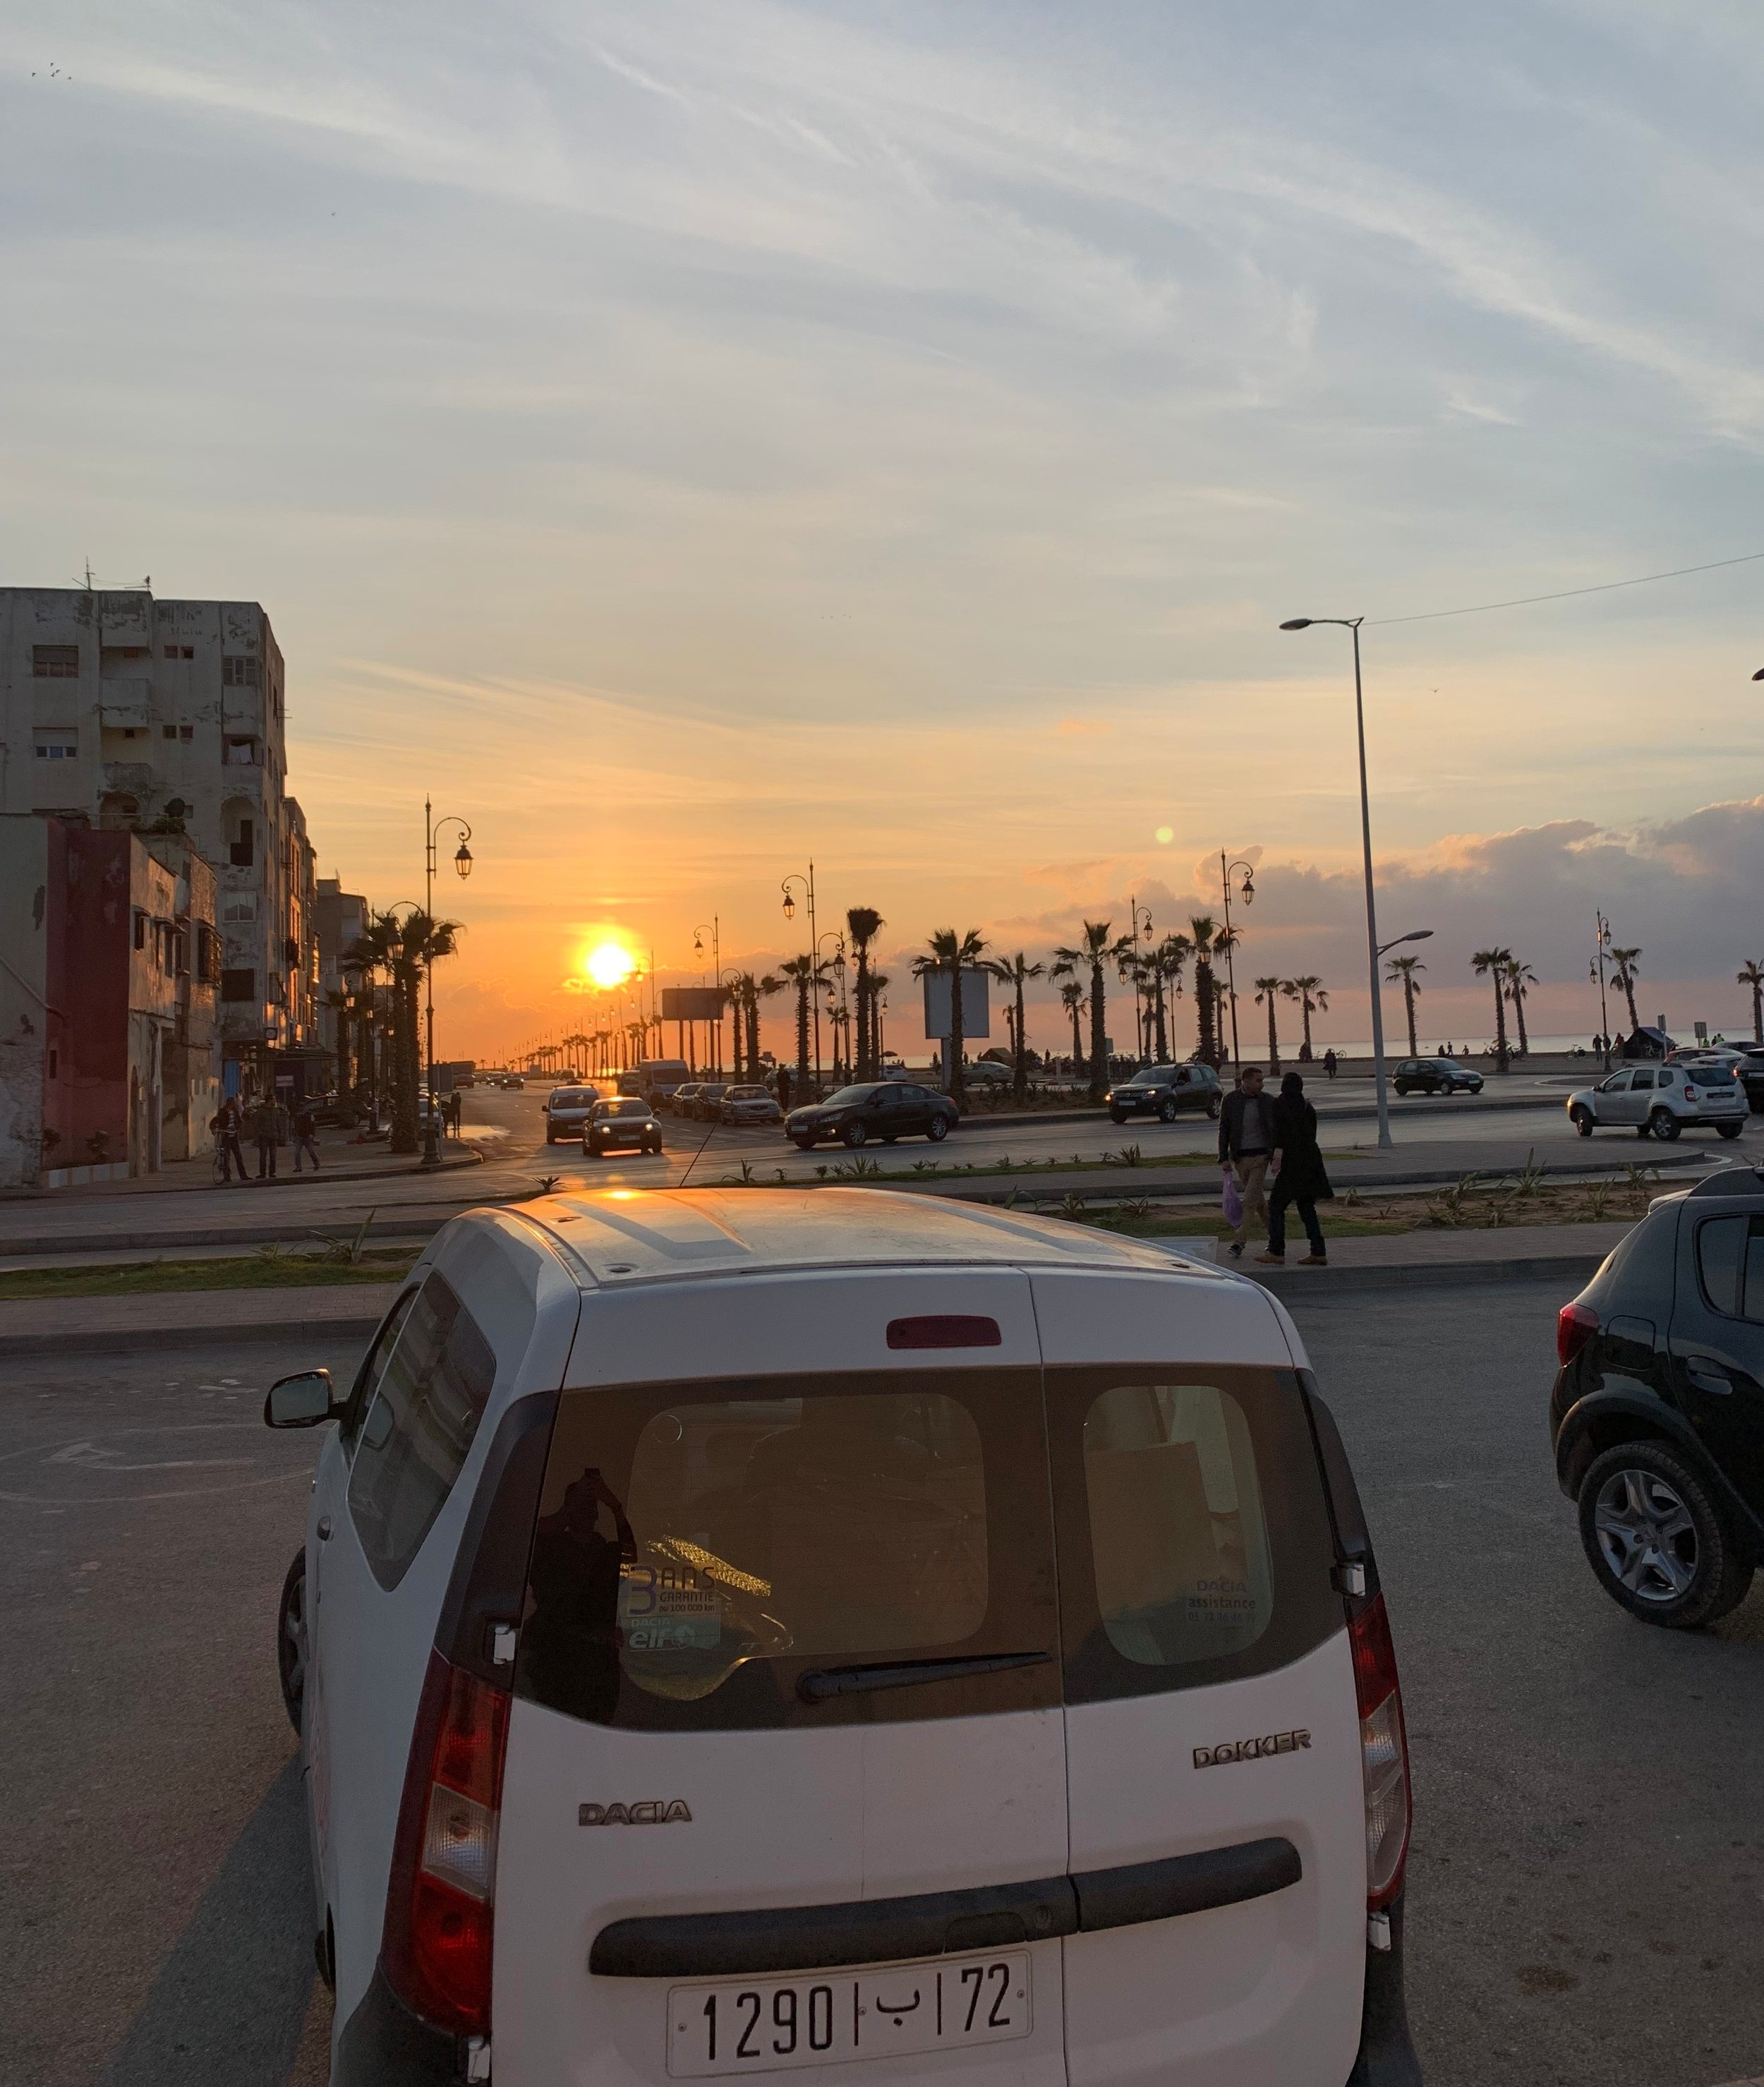 Avenue Al Marsa eventually turns into Avenue Mustapha Assaih. The road borders both the ocean with the beach's dramatic rocky coast lines and also the neighborhood of L'Ocean where I've been living with my host family and roomate Aidan. Photo Credit: M. Aboko-Cole, Spring 2019.